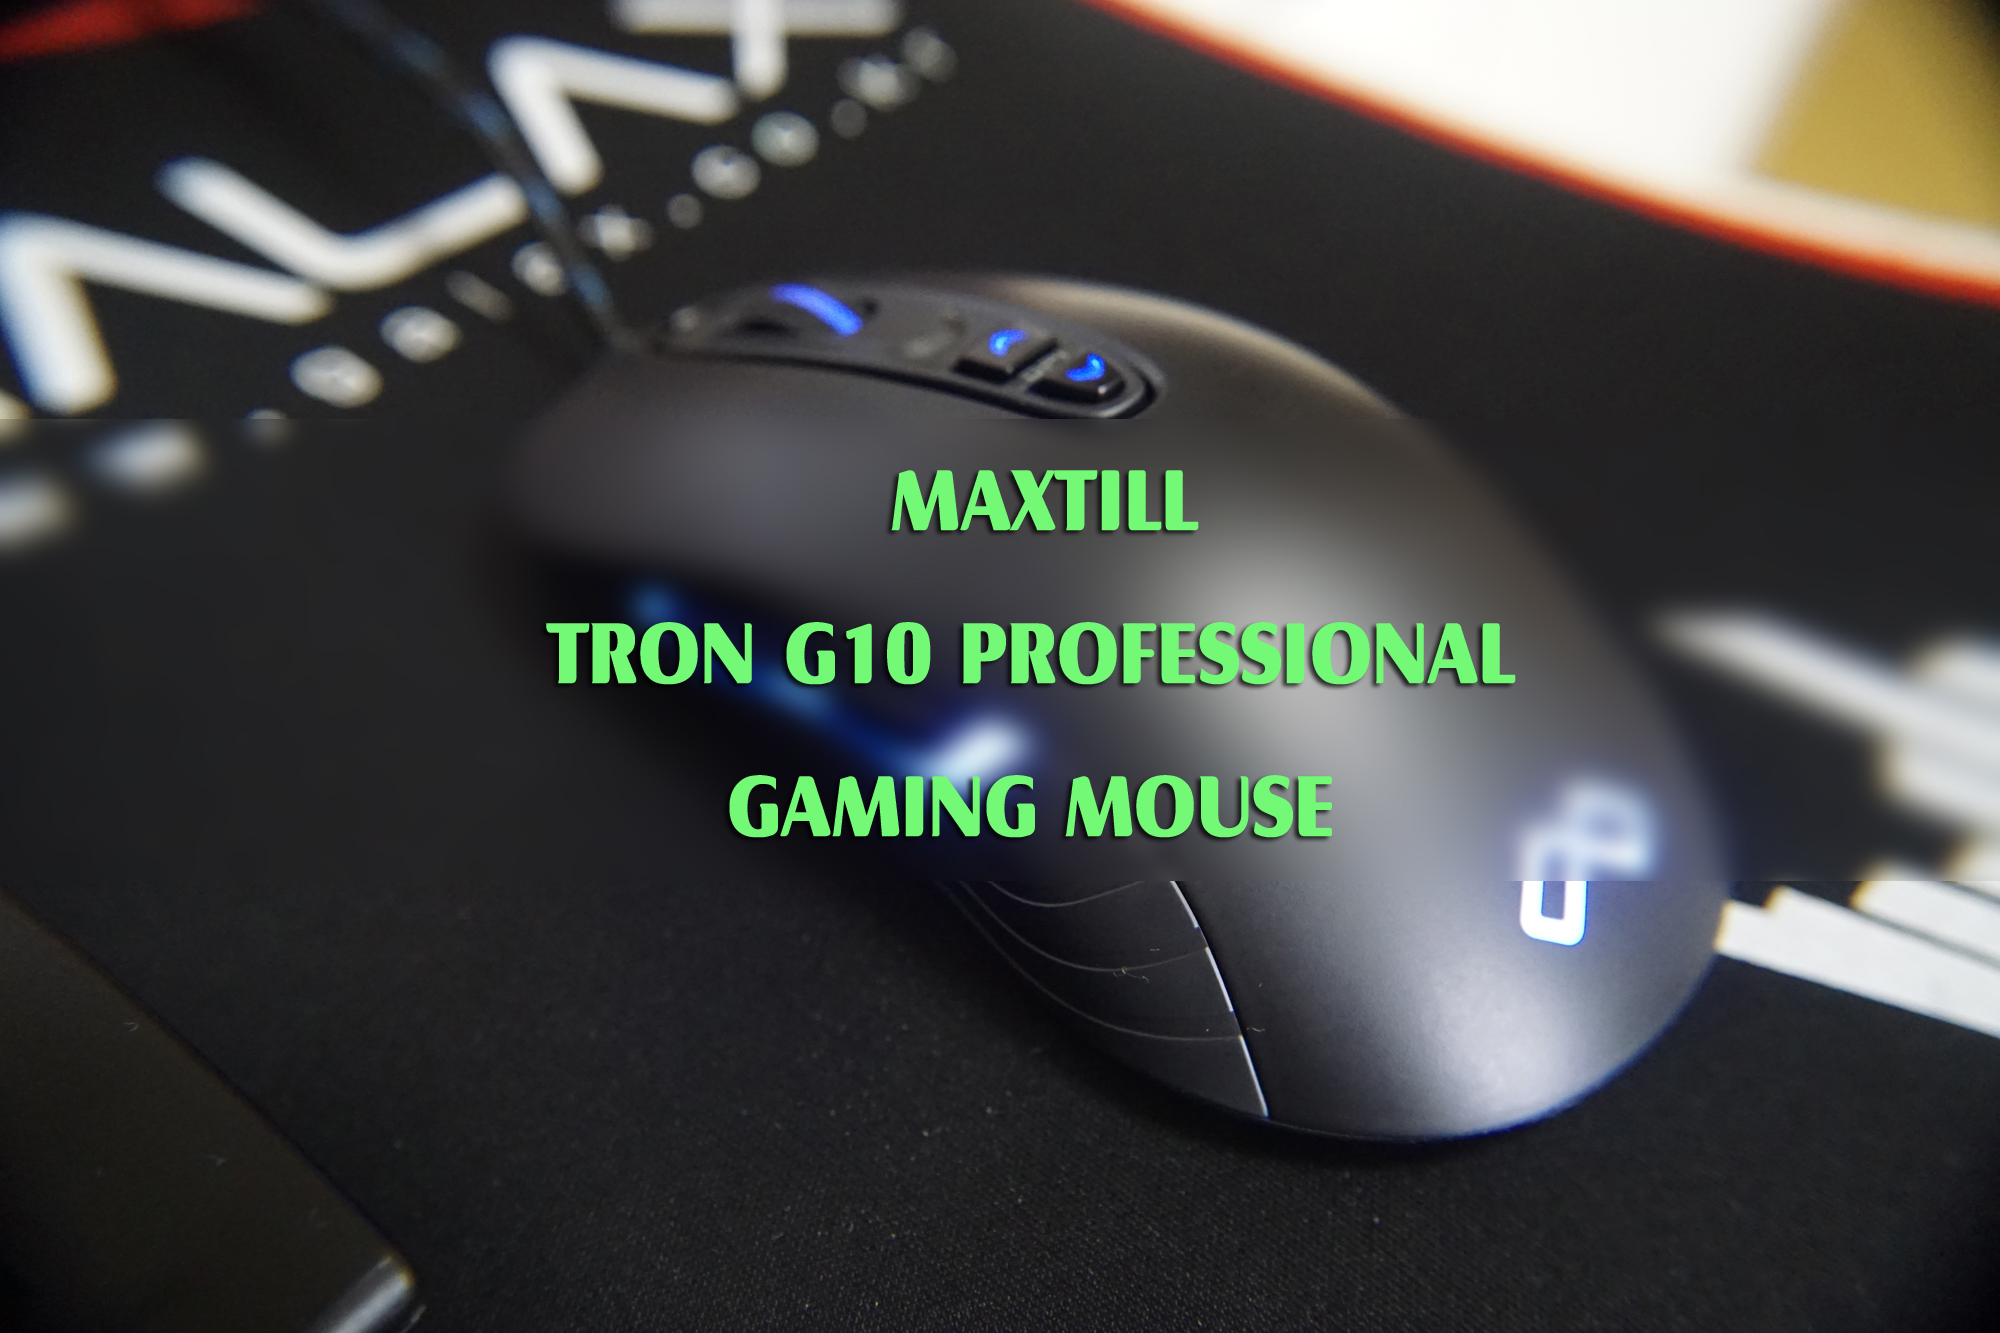 MAXTILL TRON G10 PROFESSIONAL GAMING MOUSE